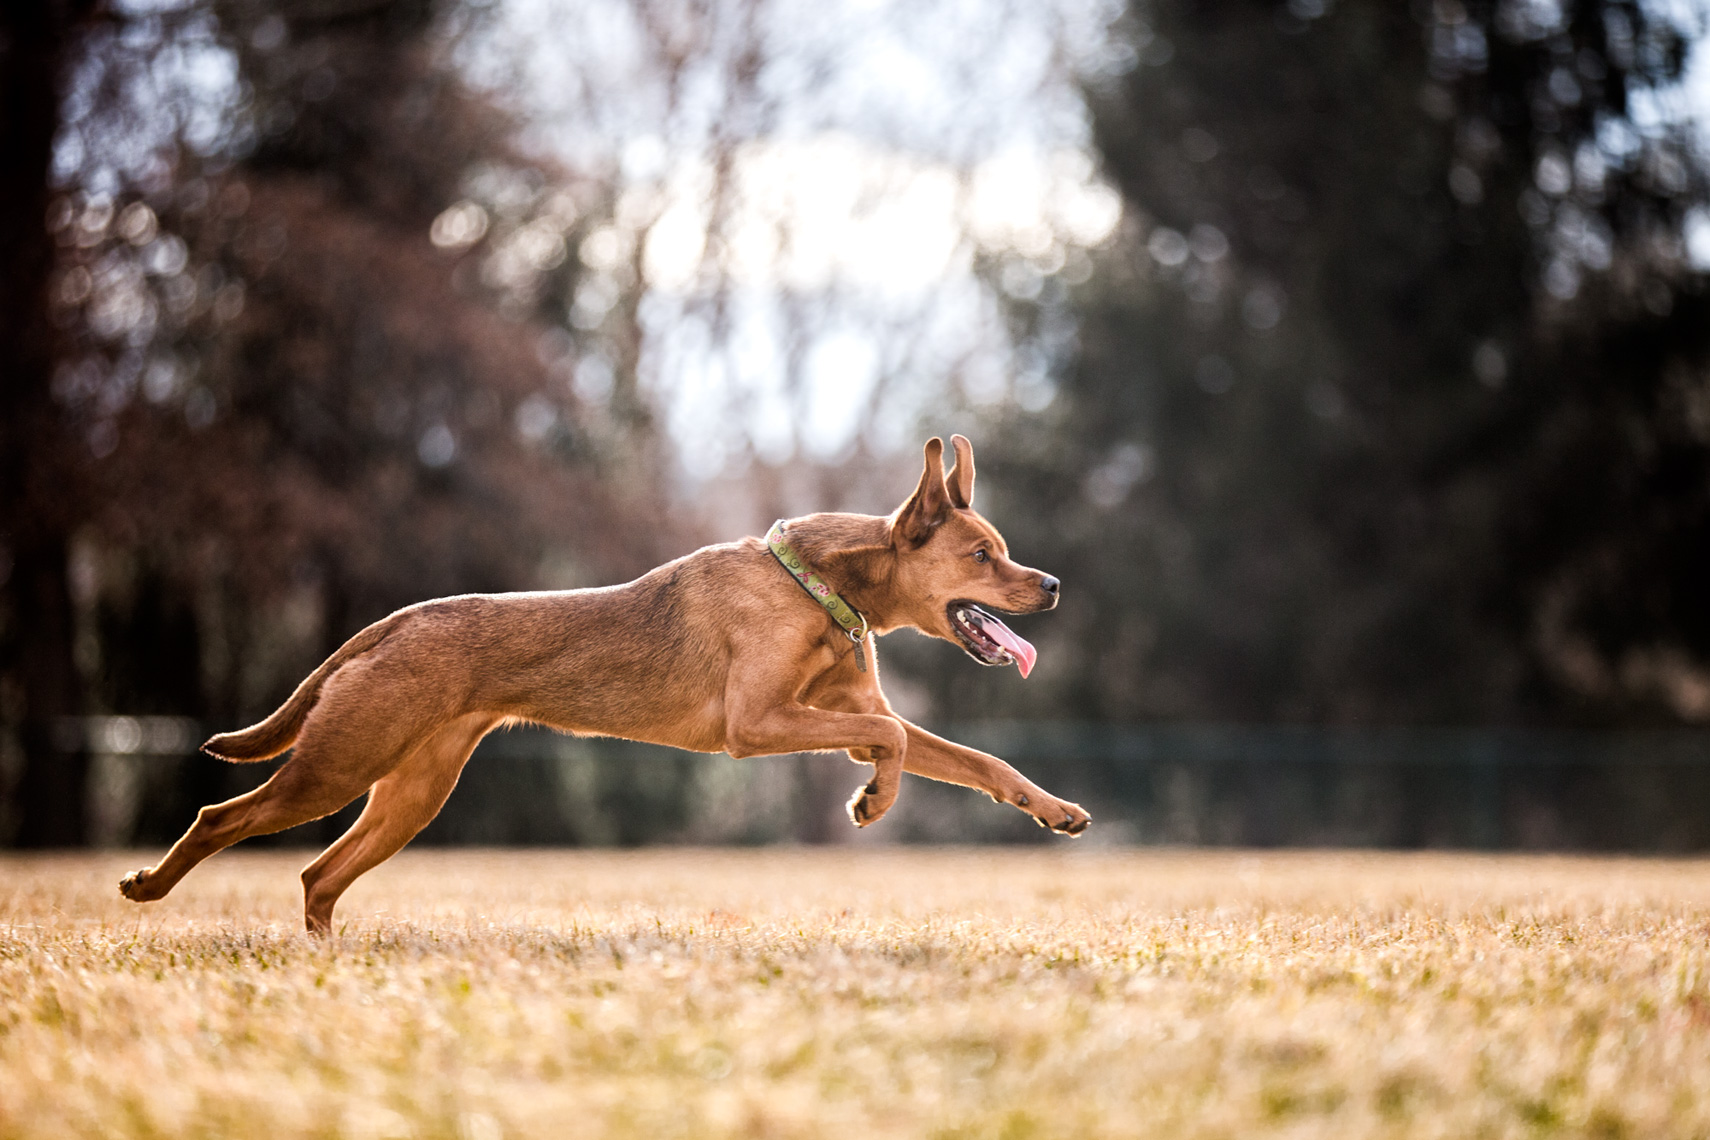 Los Angeles Dog Photography, Michael Brian, pet, cat, Dog full speed run, Zeus Jones Purina ONE 28 Day Challenge Asheville, North Carolina